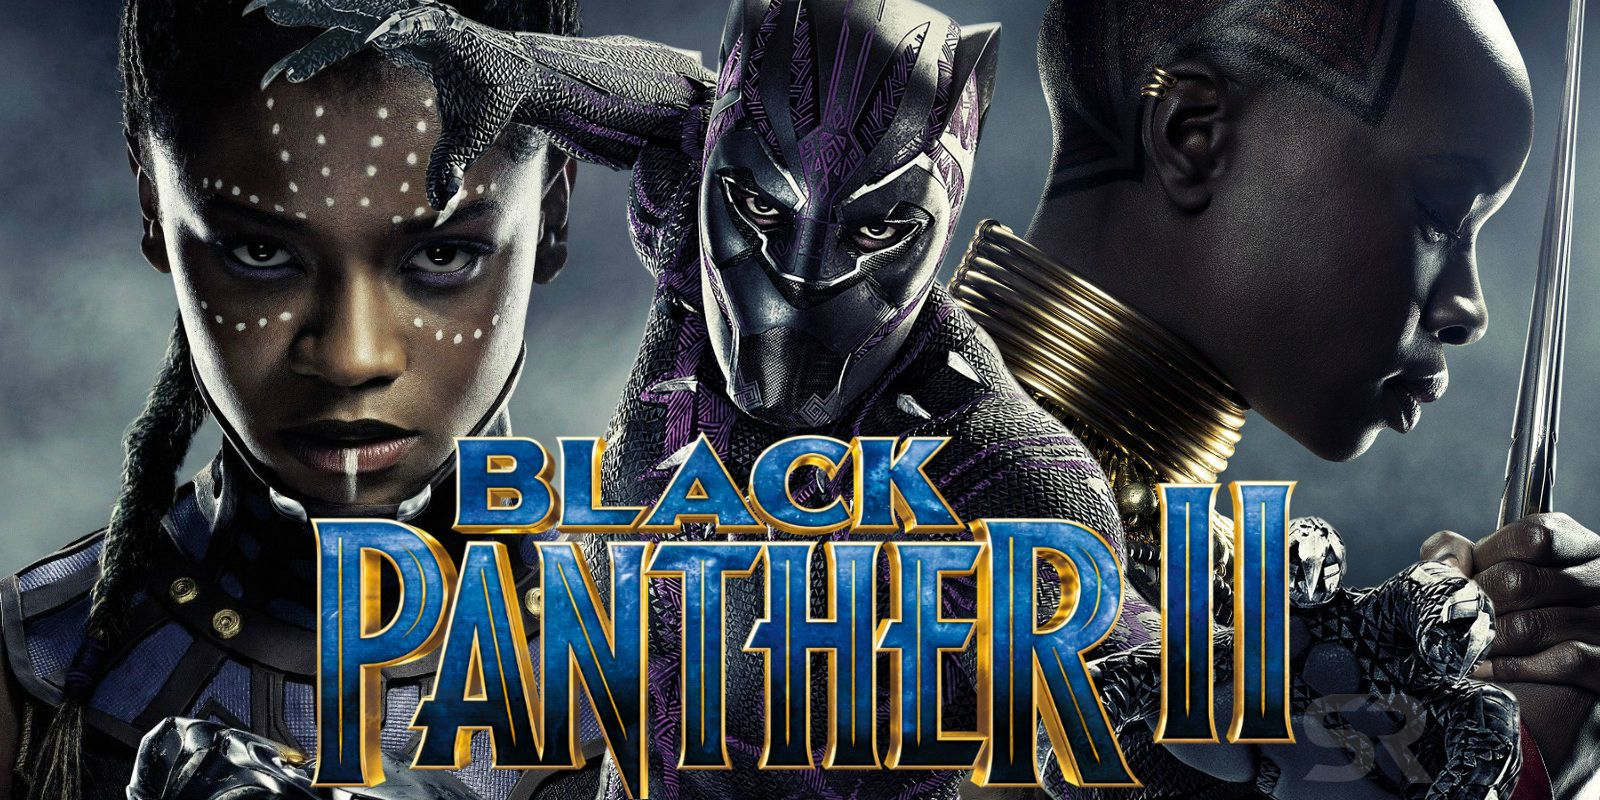 Ryan Coogler Is All Set For Black Panther 2, Officially Announced